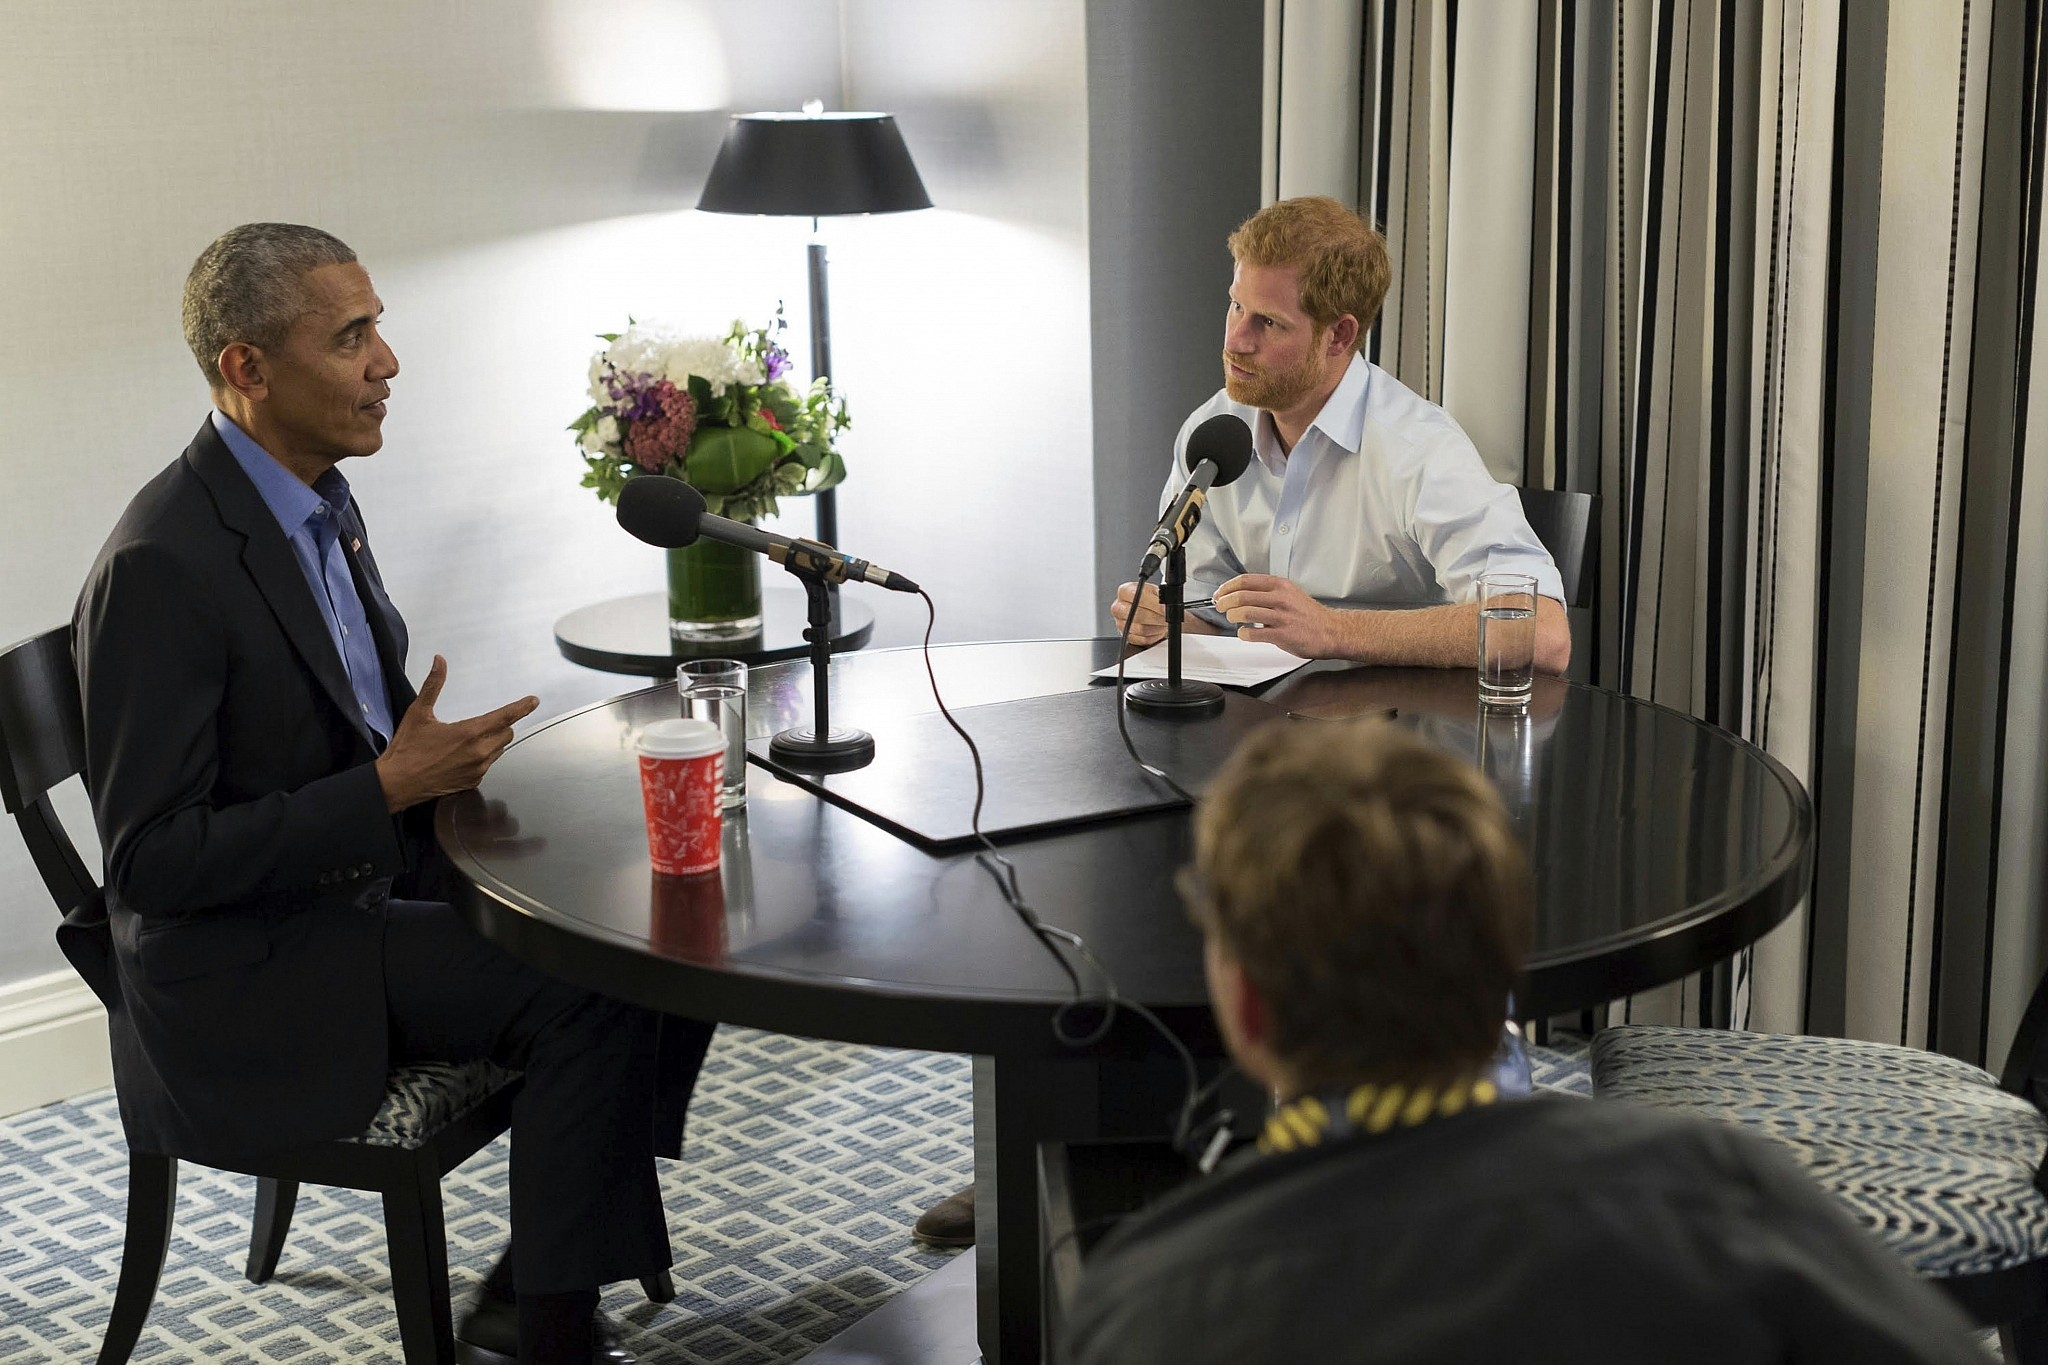 Obama uses interview with Prince Harry to warn of social media dangers